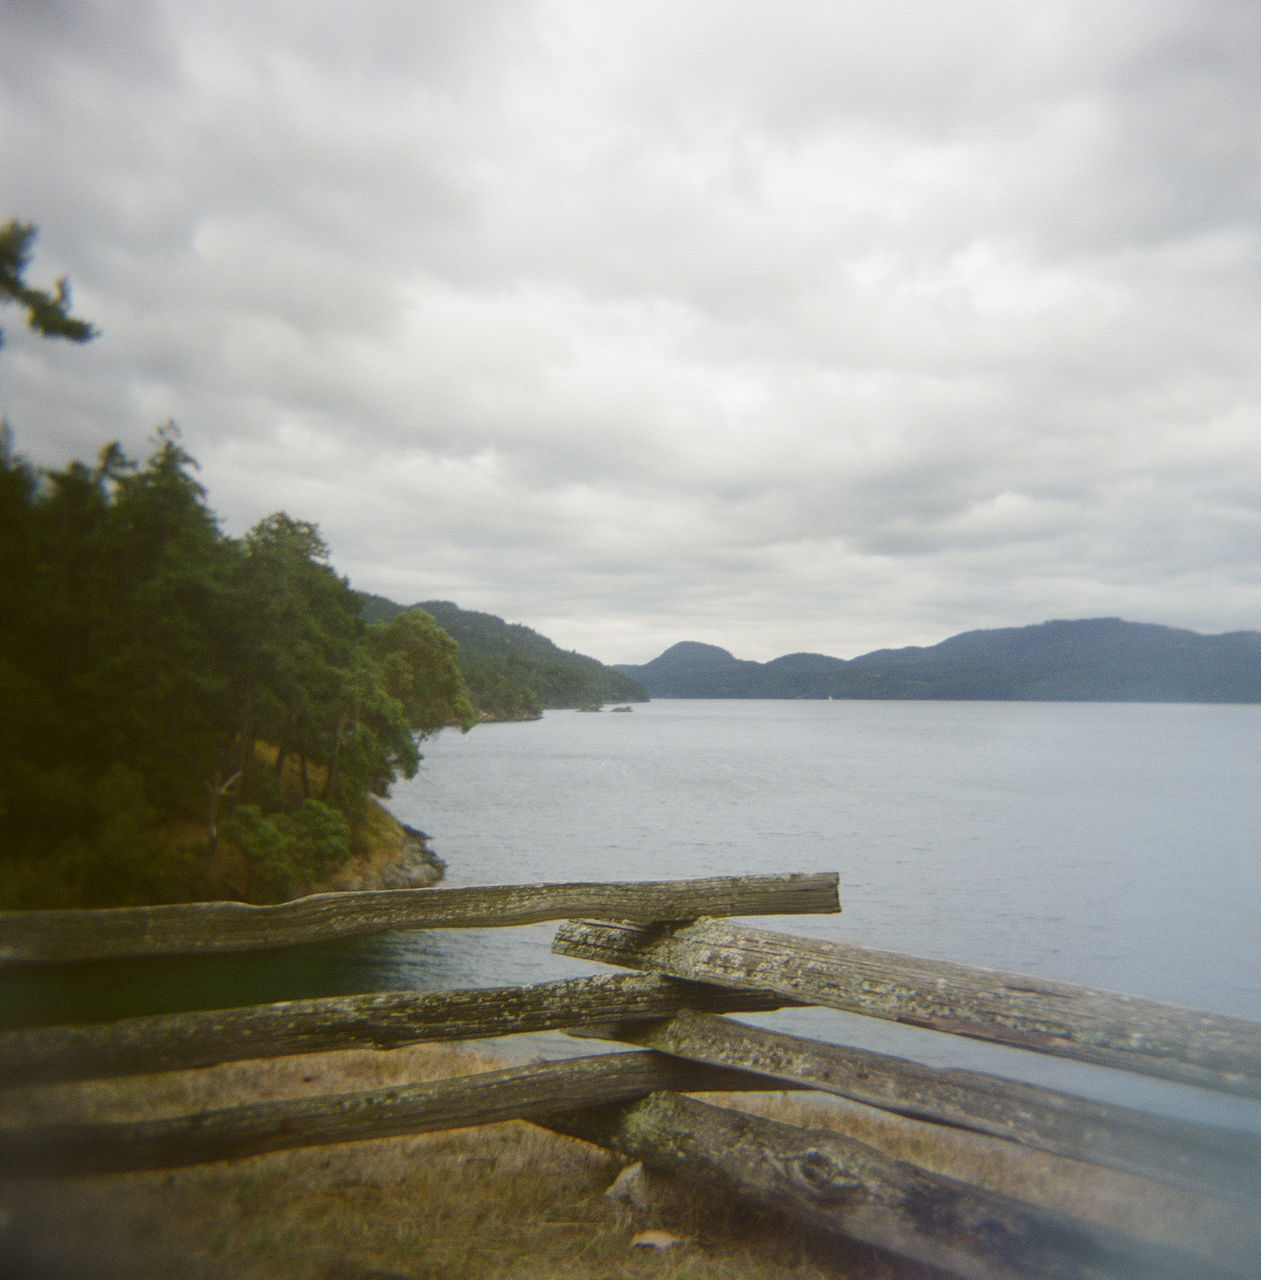 sky, scenics, tranquility, nature, tranquil scene, water, no people, cloud - sky, beauty in nature, day, outdoors, mountain, tree, sea